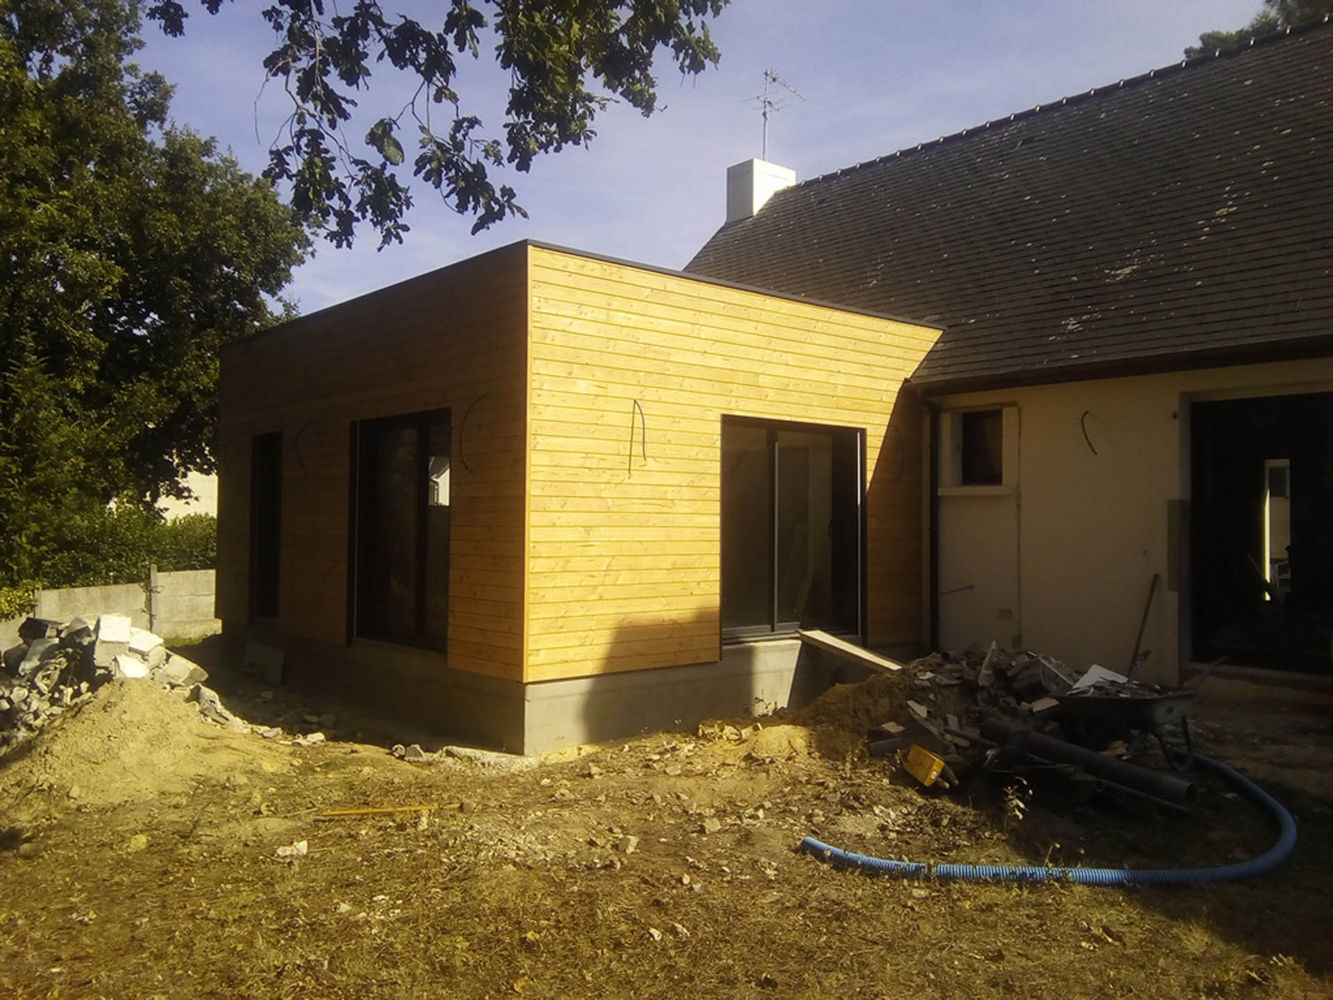 20-2-extension-ossature-bois-bardage-epdm-locoal-mendon